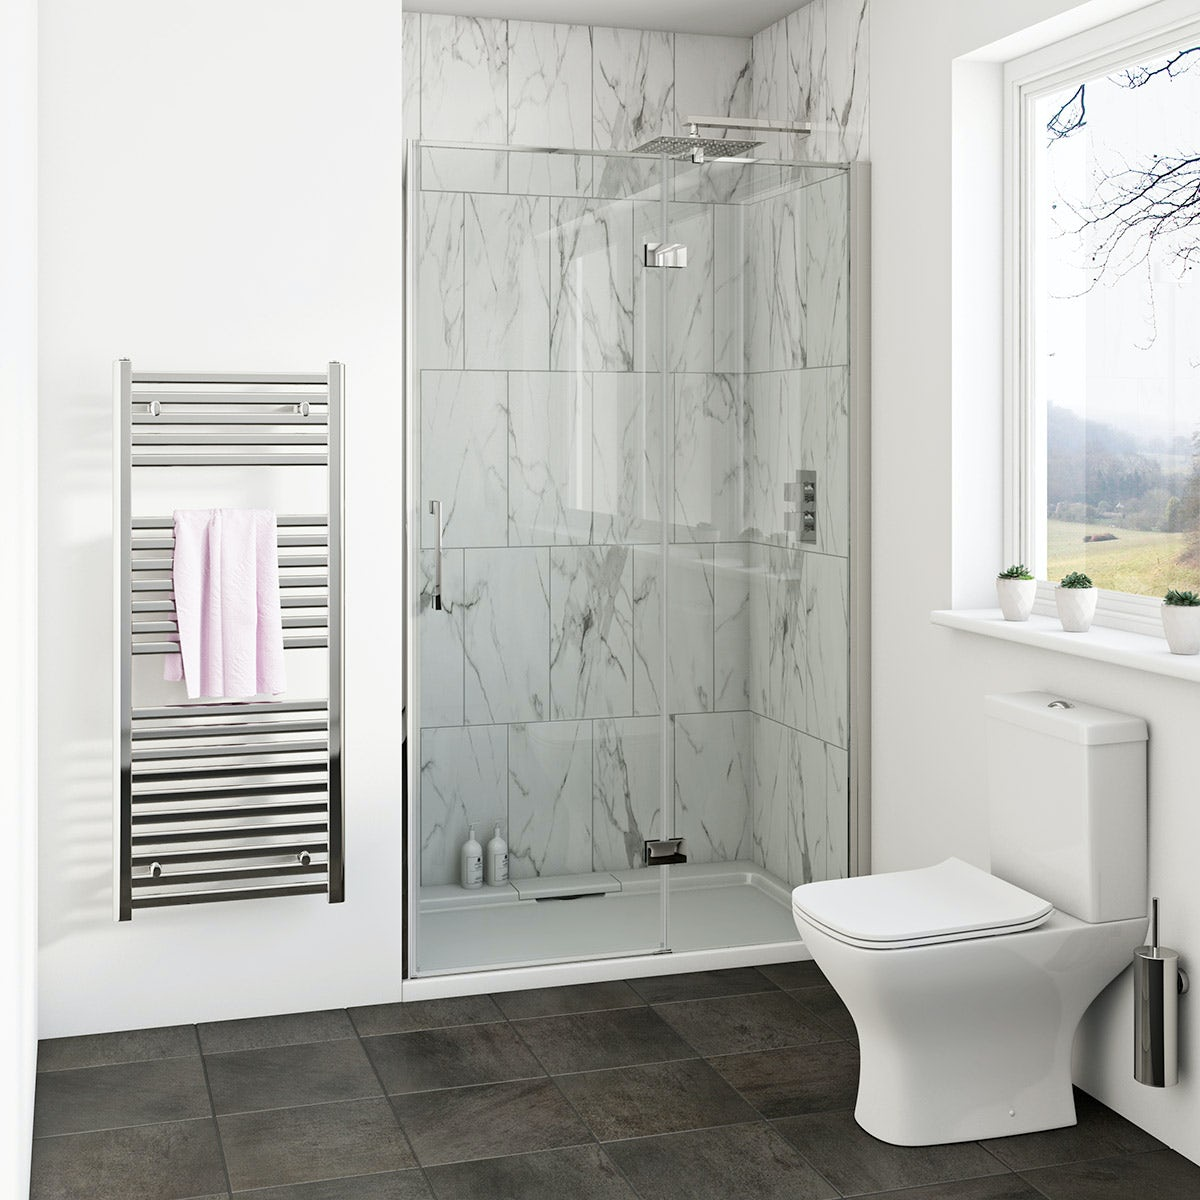 Mode Cooper 8mm hinged easy clean shower door 900mm